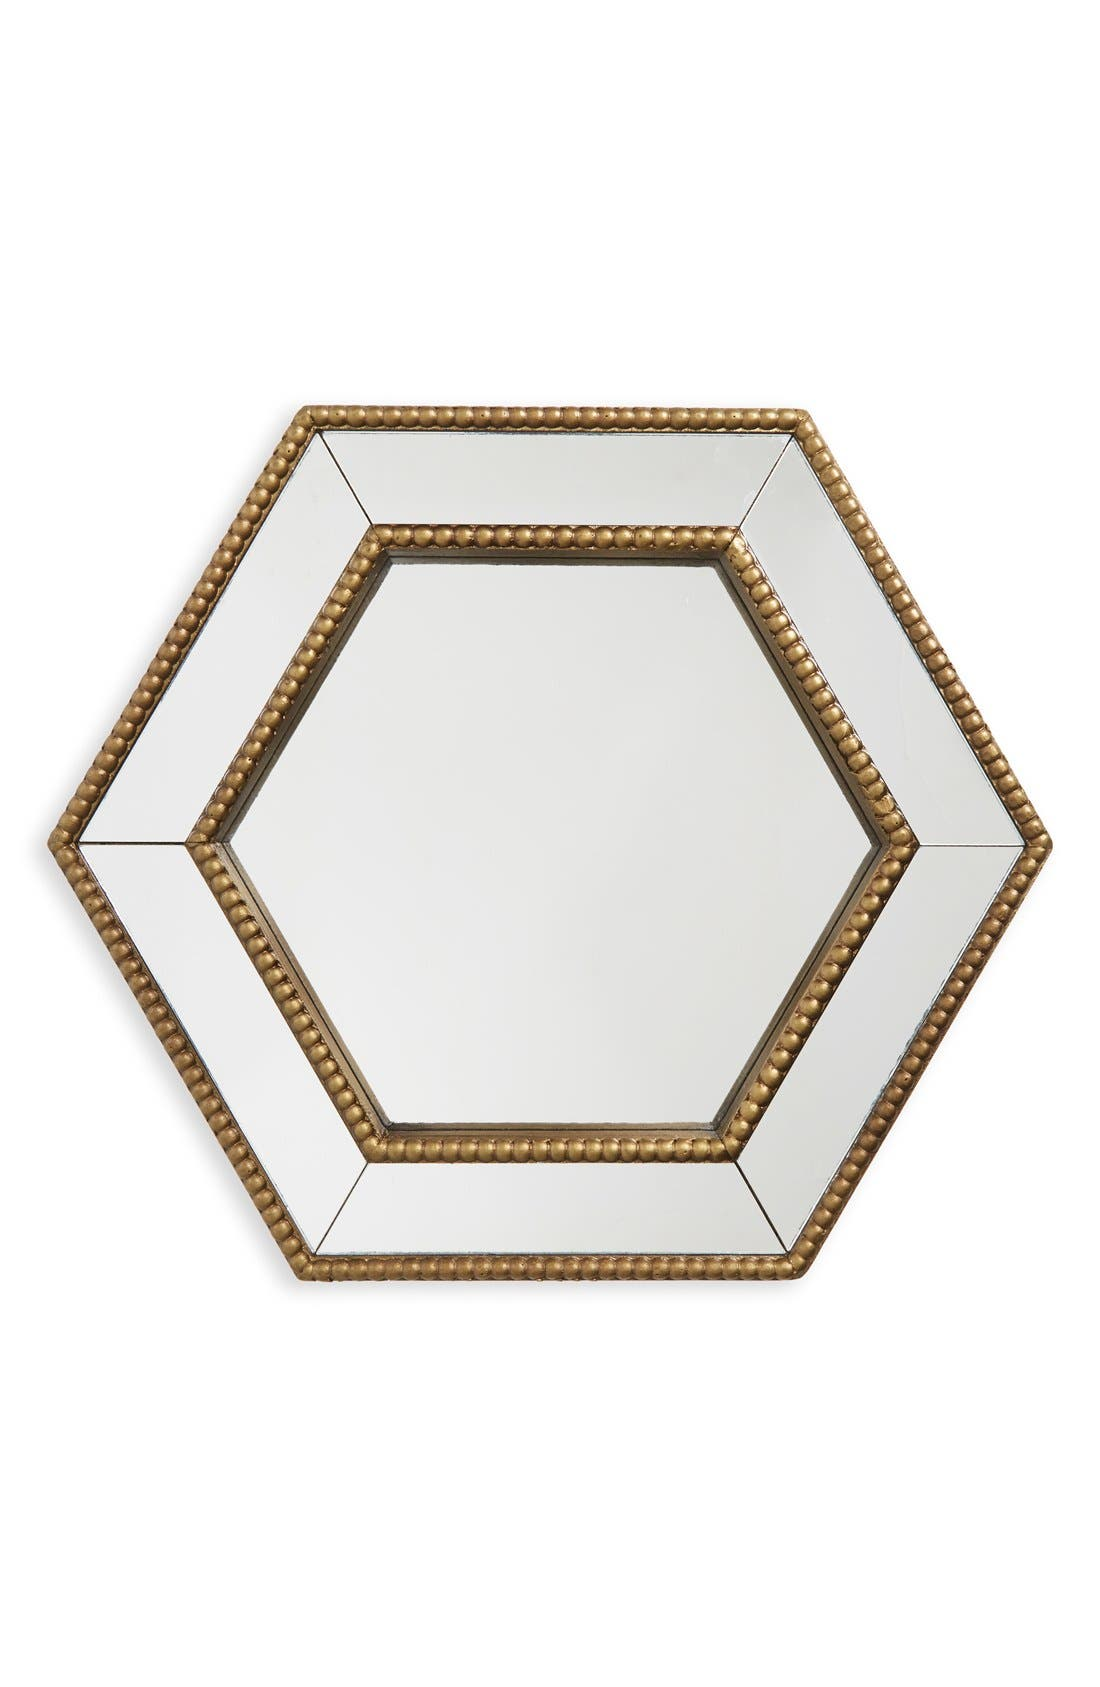 Era Home 'Gold Hexagon' Mirror